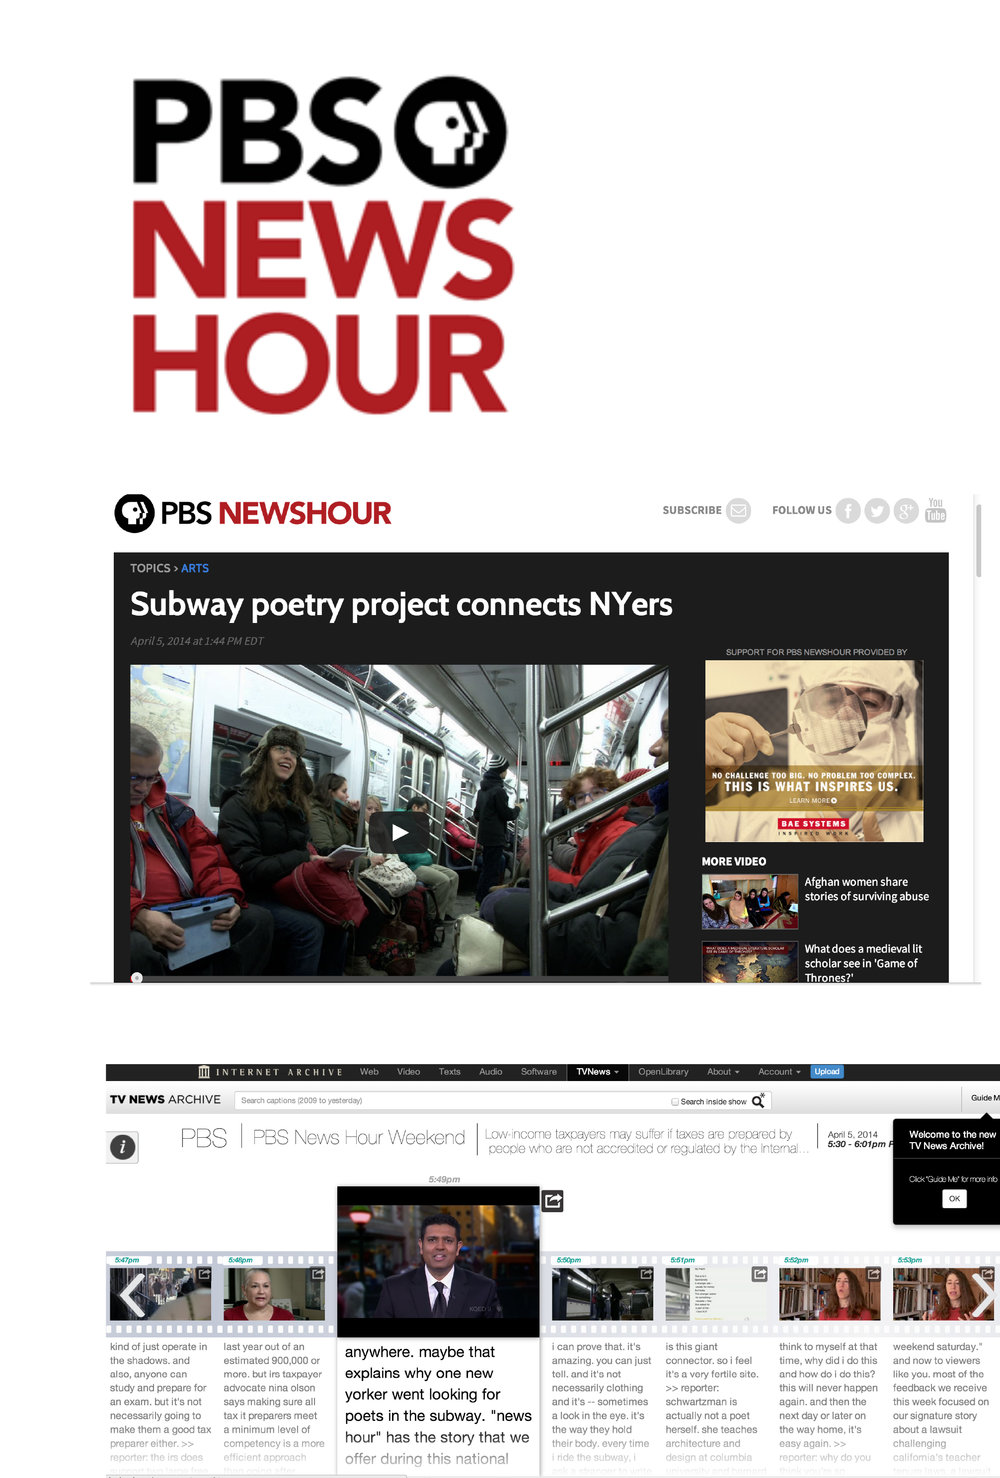 Poems by New Yorkers on PBS Weekend News Hour